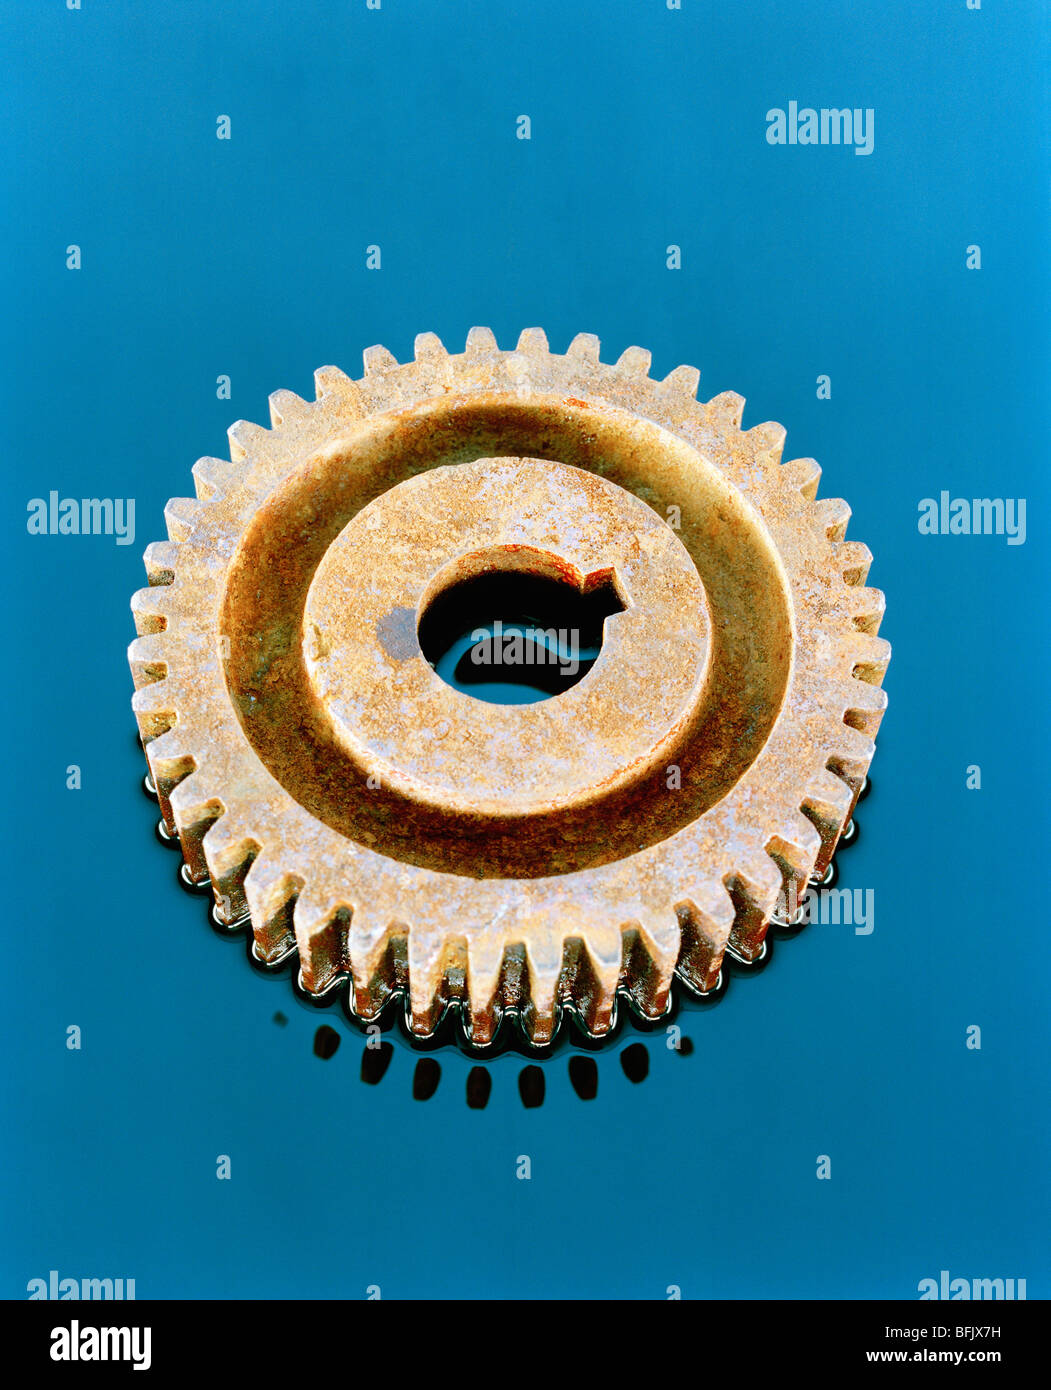 Gearwheel, close-up. - Stock Image